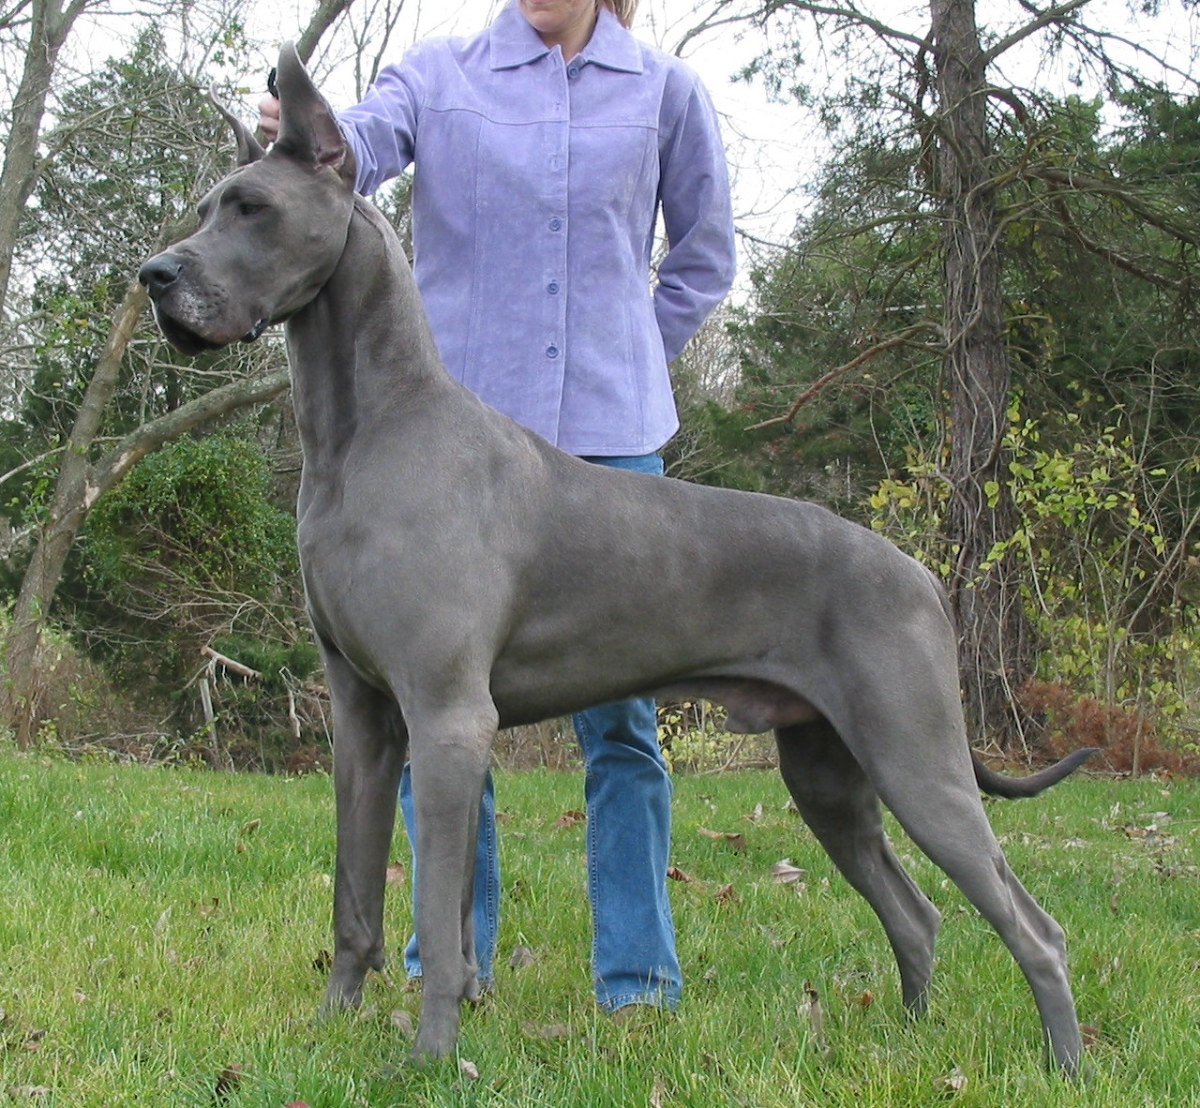 This gorgeous Blue Great Dane is from Von Knopf Danes.  Visit their great website: www.vonknopfdanes.com